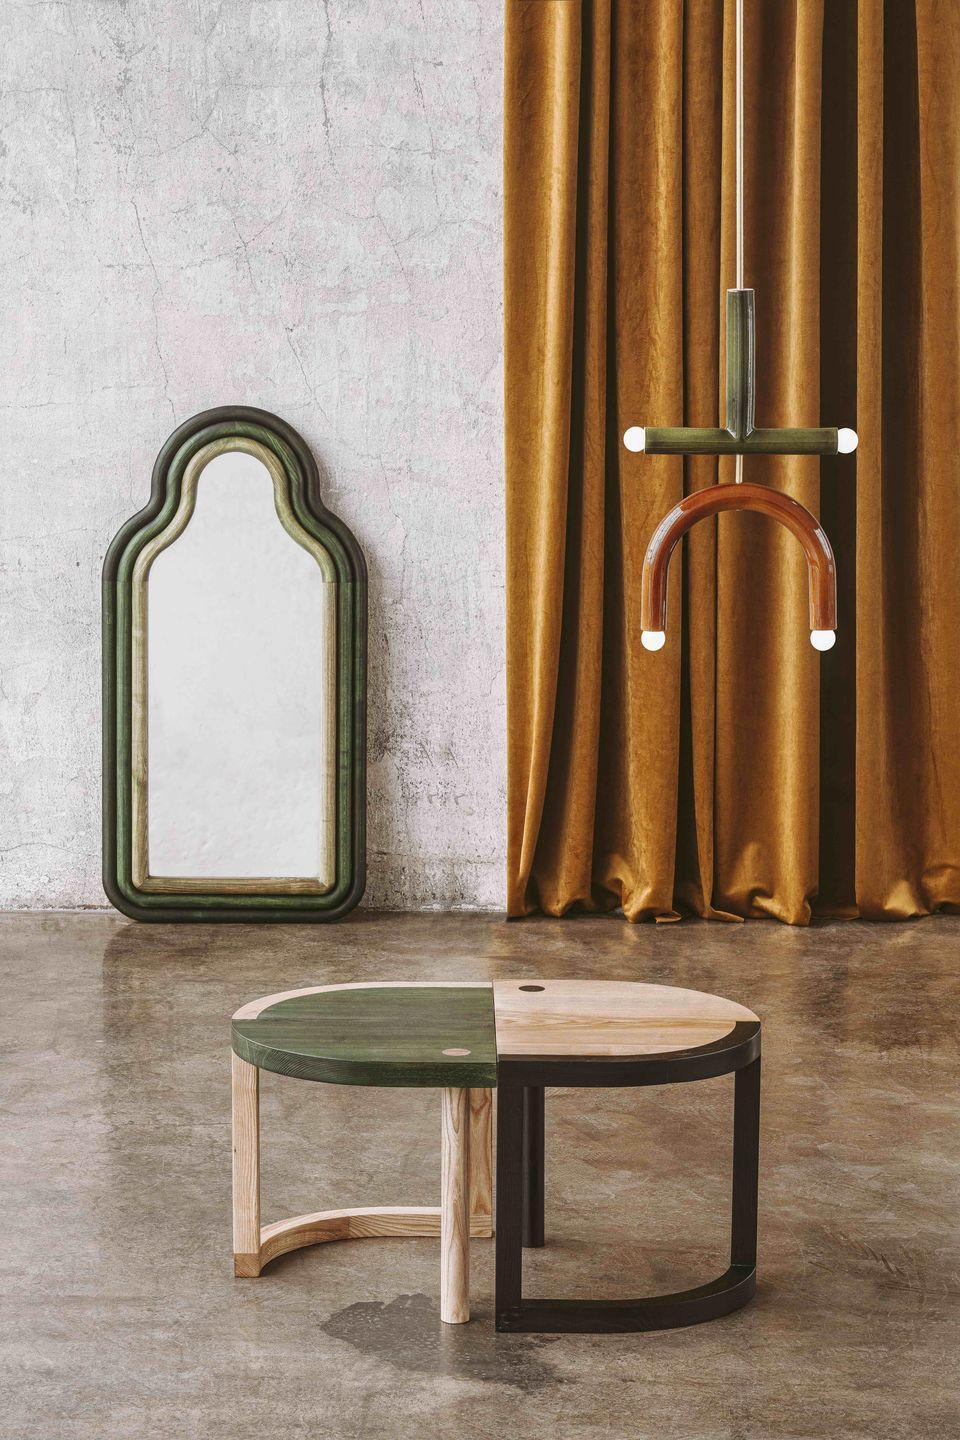 """<p>Pani Jurek's 'TRN' collection was inspired by 20th-century painter Jan Tarasin's colourful, symbol-filled canvases. The series of sustainably made furniture and lighting is intended to be used together to build up abstract compositions (the tables can be placed together to create a larger one, as pictured), and no two pieces are exactly alike. £1,179, <a href=""""https://www.adorno.design"""" rel=""""nofollow noopener"""" target=""""_blank"""" data-ylk=""""slk:adorno.design"""" class=""""link rapid-noclick-resp"""">adorno.design</a></p>"""